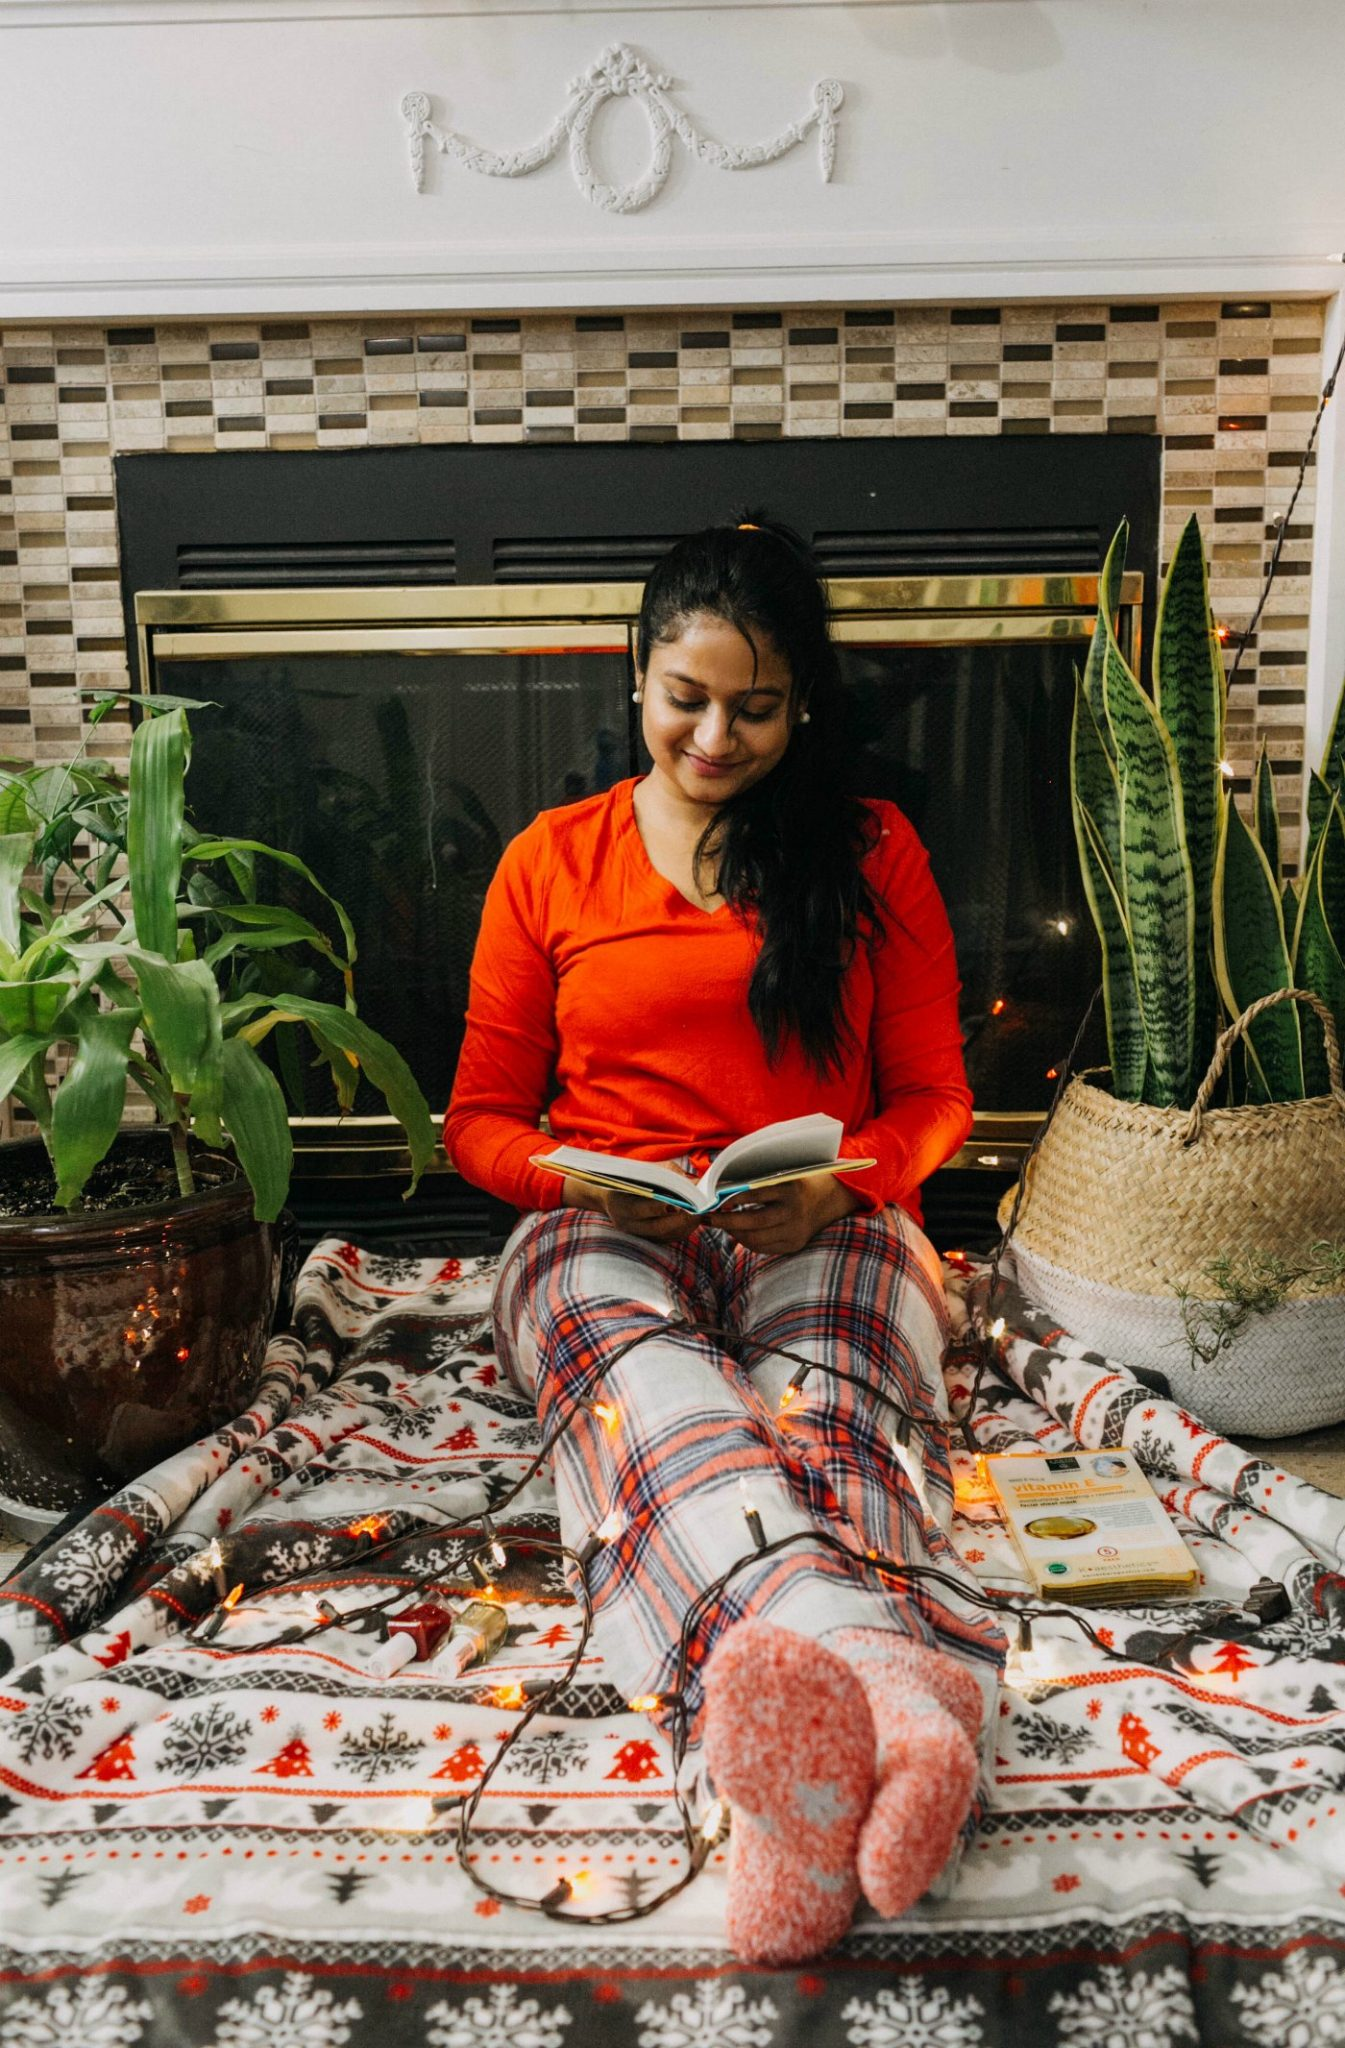 last minute holiday gift ideas for your family | | 7 Kohl's Gifts Under $25 featured by top US life and style blog, Dreaming Loud: image of a woman sitting on a Sherpa fleece throw available at Kohls